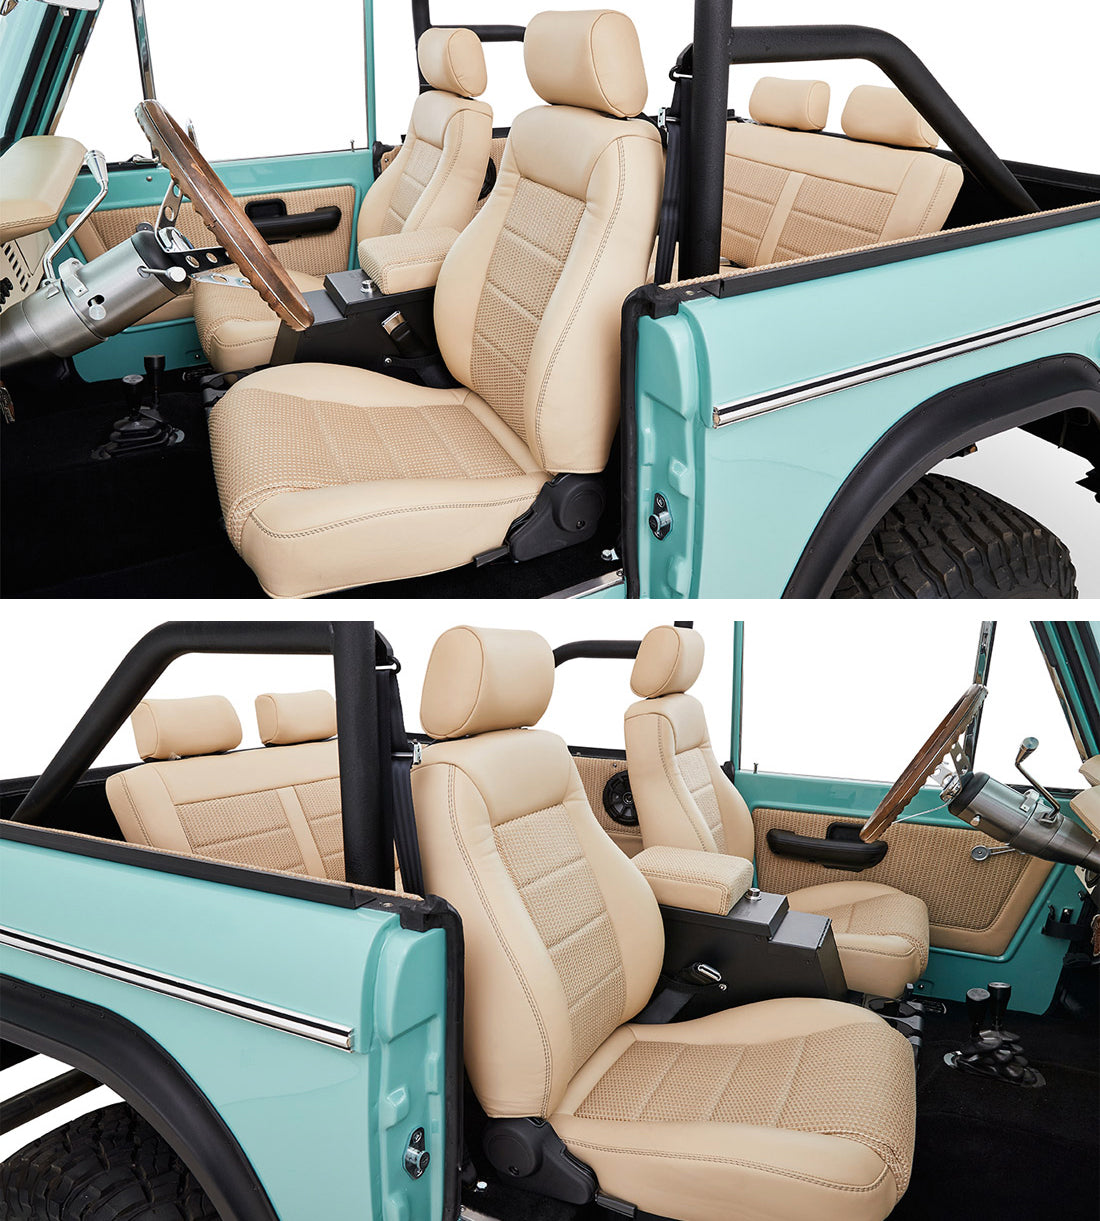 Classic Ford Broncos with Relicate Woven Leather Interior Seats